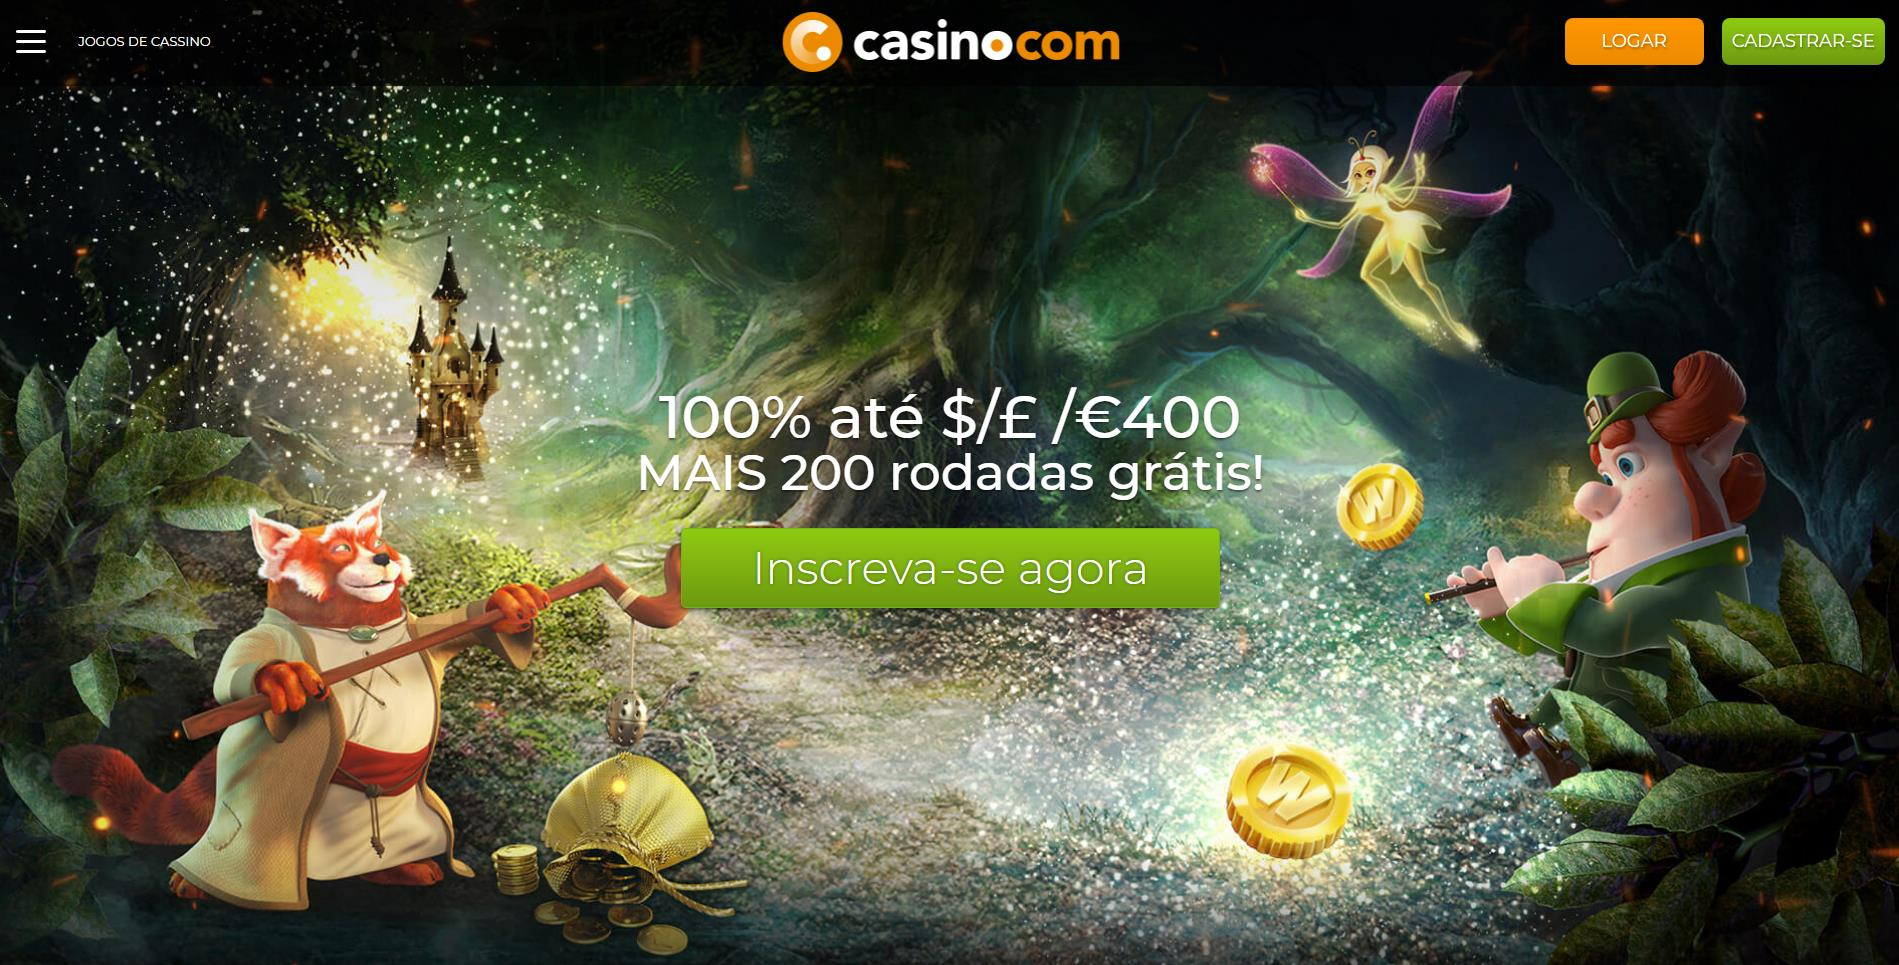 admiral casino online review